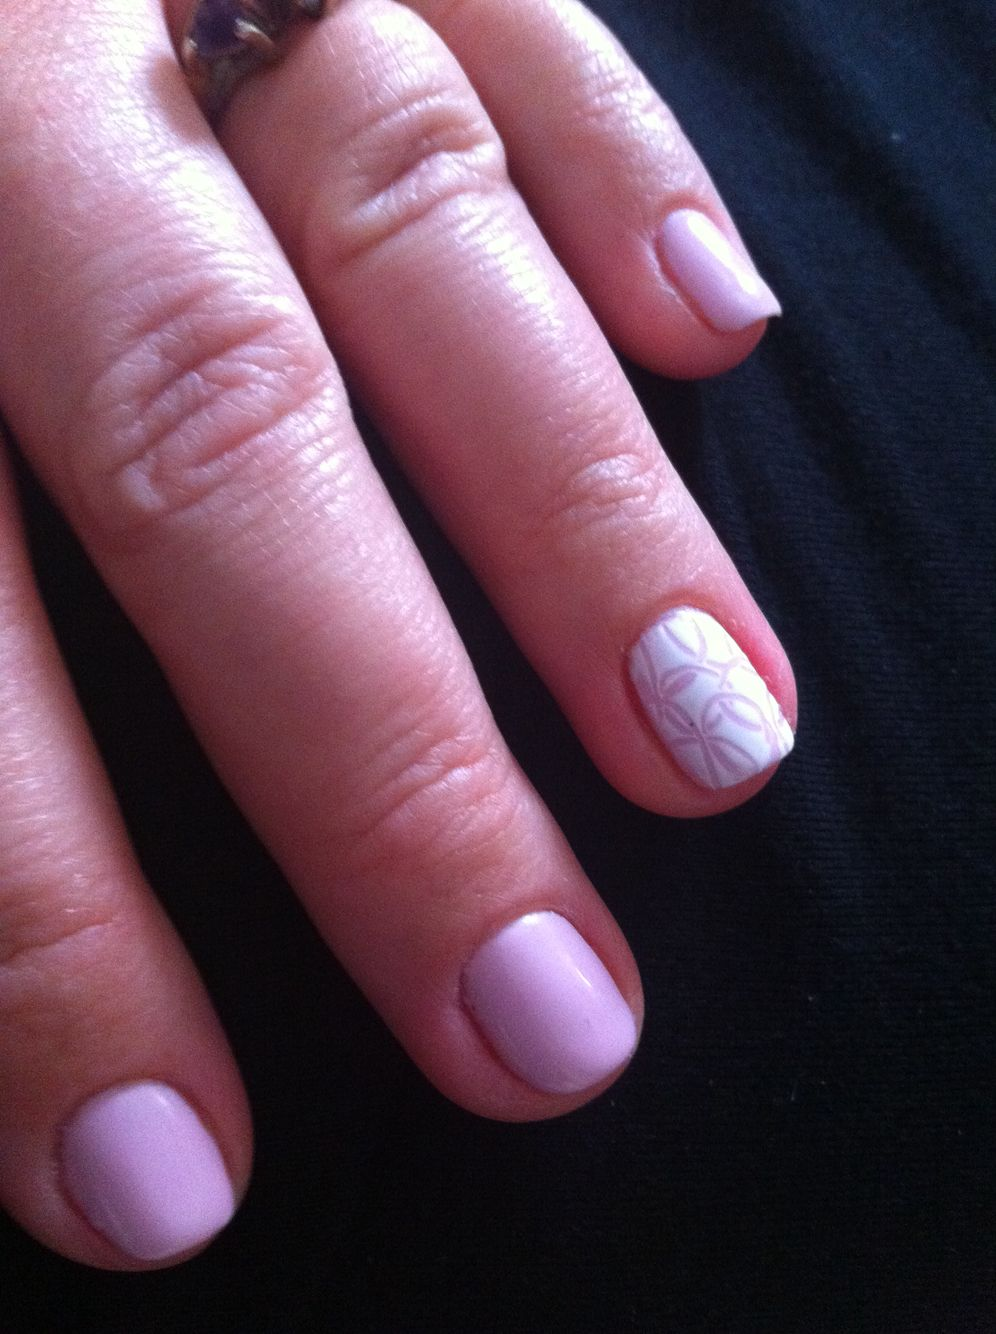 Nail art done by etching out a design with a pointy orange wood ...